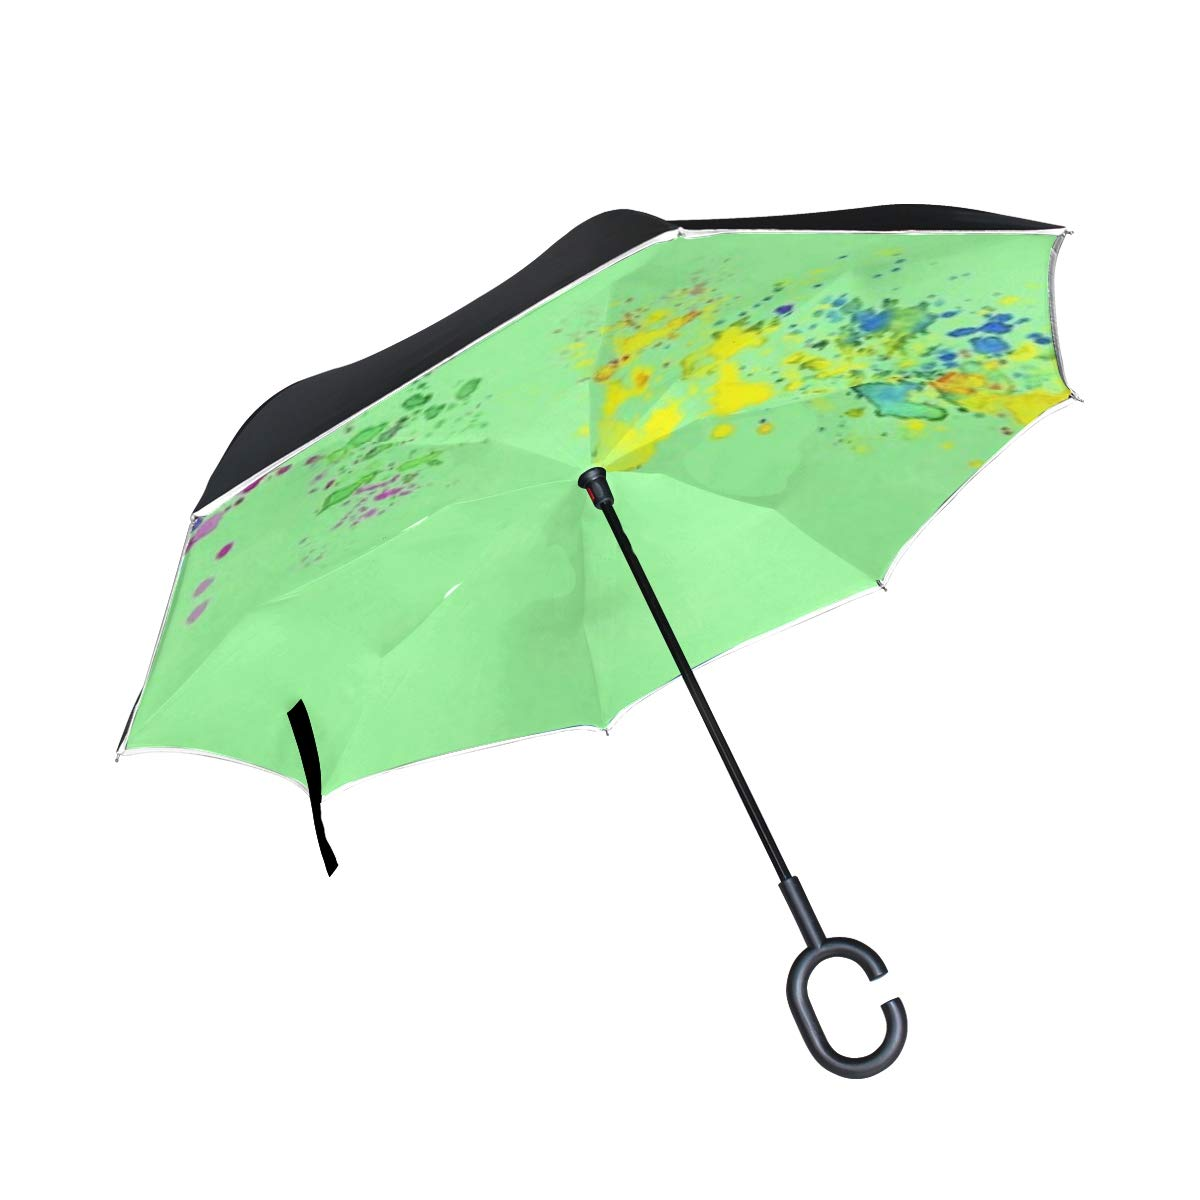 Jnseff Double Layer Inverted Banner Template Green Colorful School Fun Umbrellas Reverse Folding Umbrella Windproof Uv Protection Big Straight Umbrella for Car Rain Outdoor with C-Shaped Handle